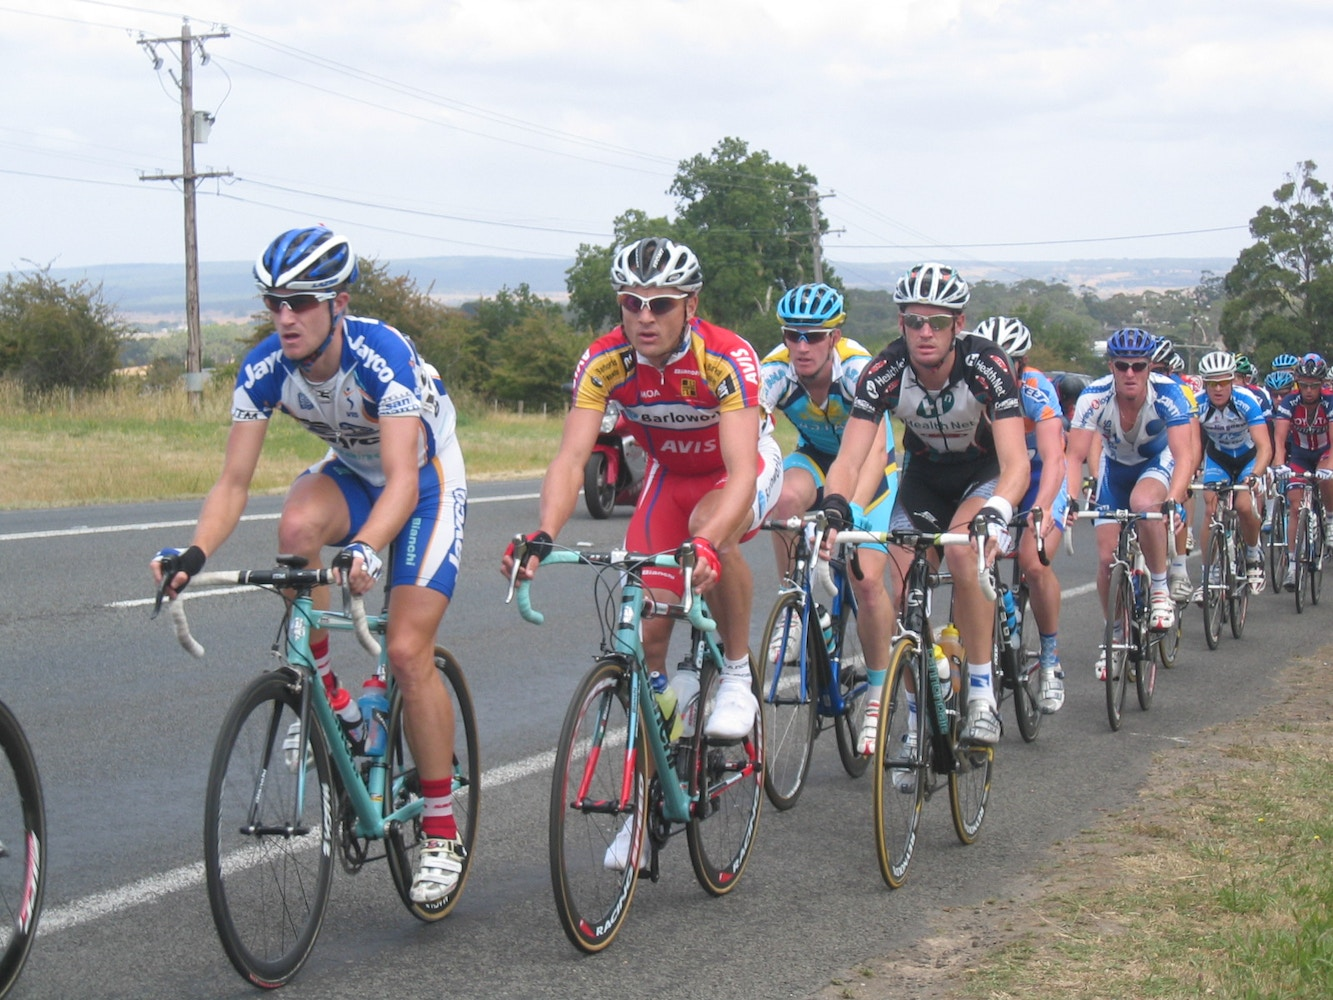 Congratulations to 2008 Australian Road Champion Matthew Lloyd!